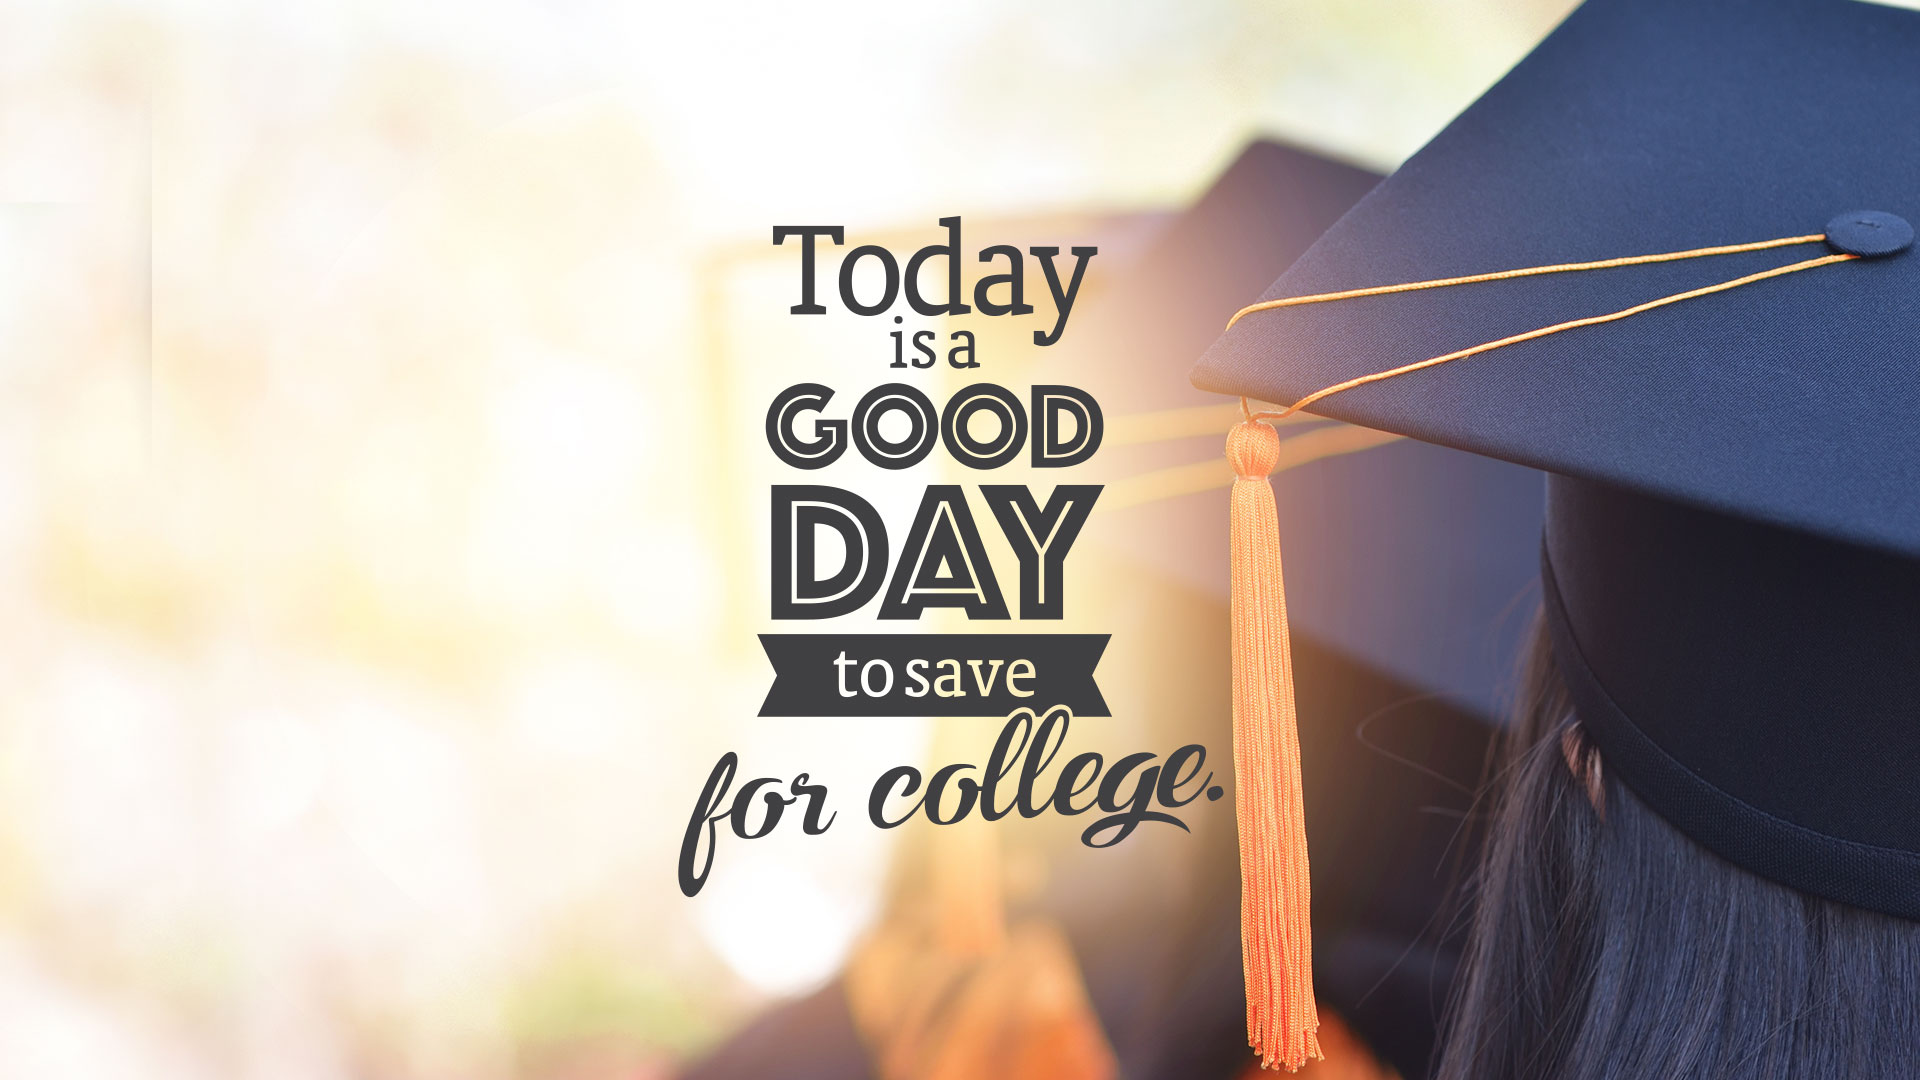 PlanningforCollegeTax-AdvantagedOptionsforSavingforanEducation